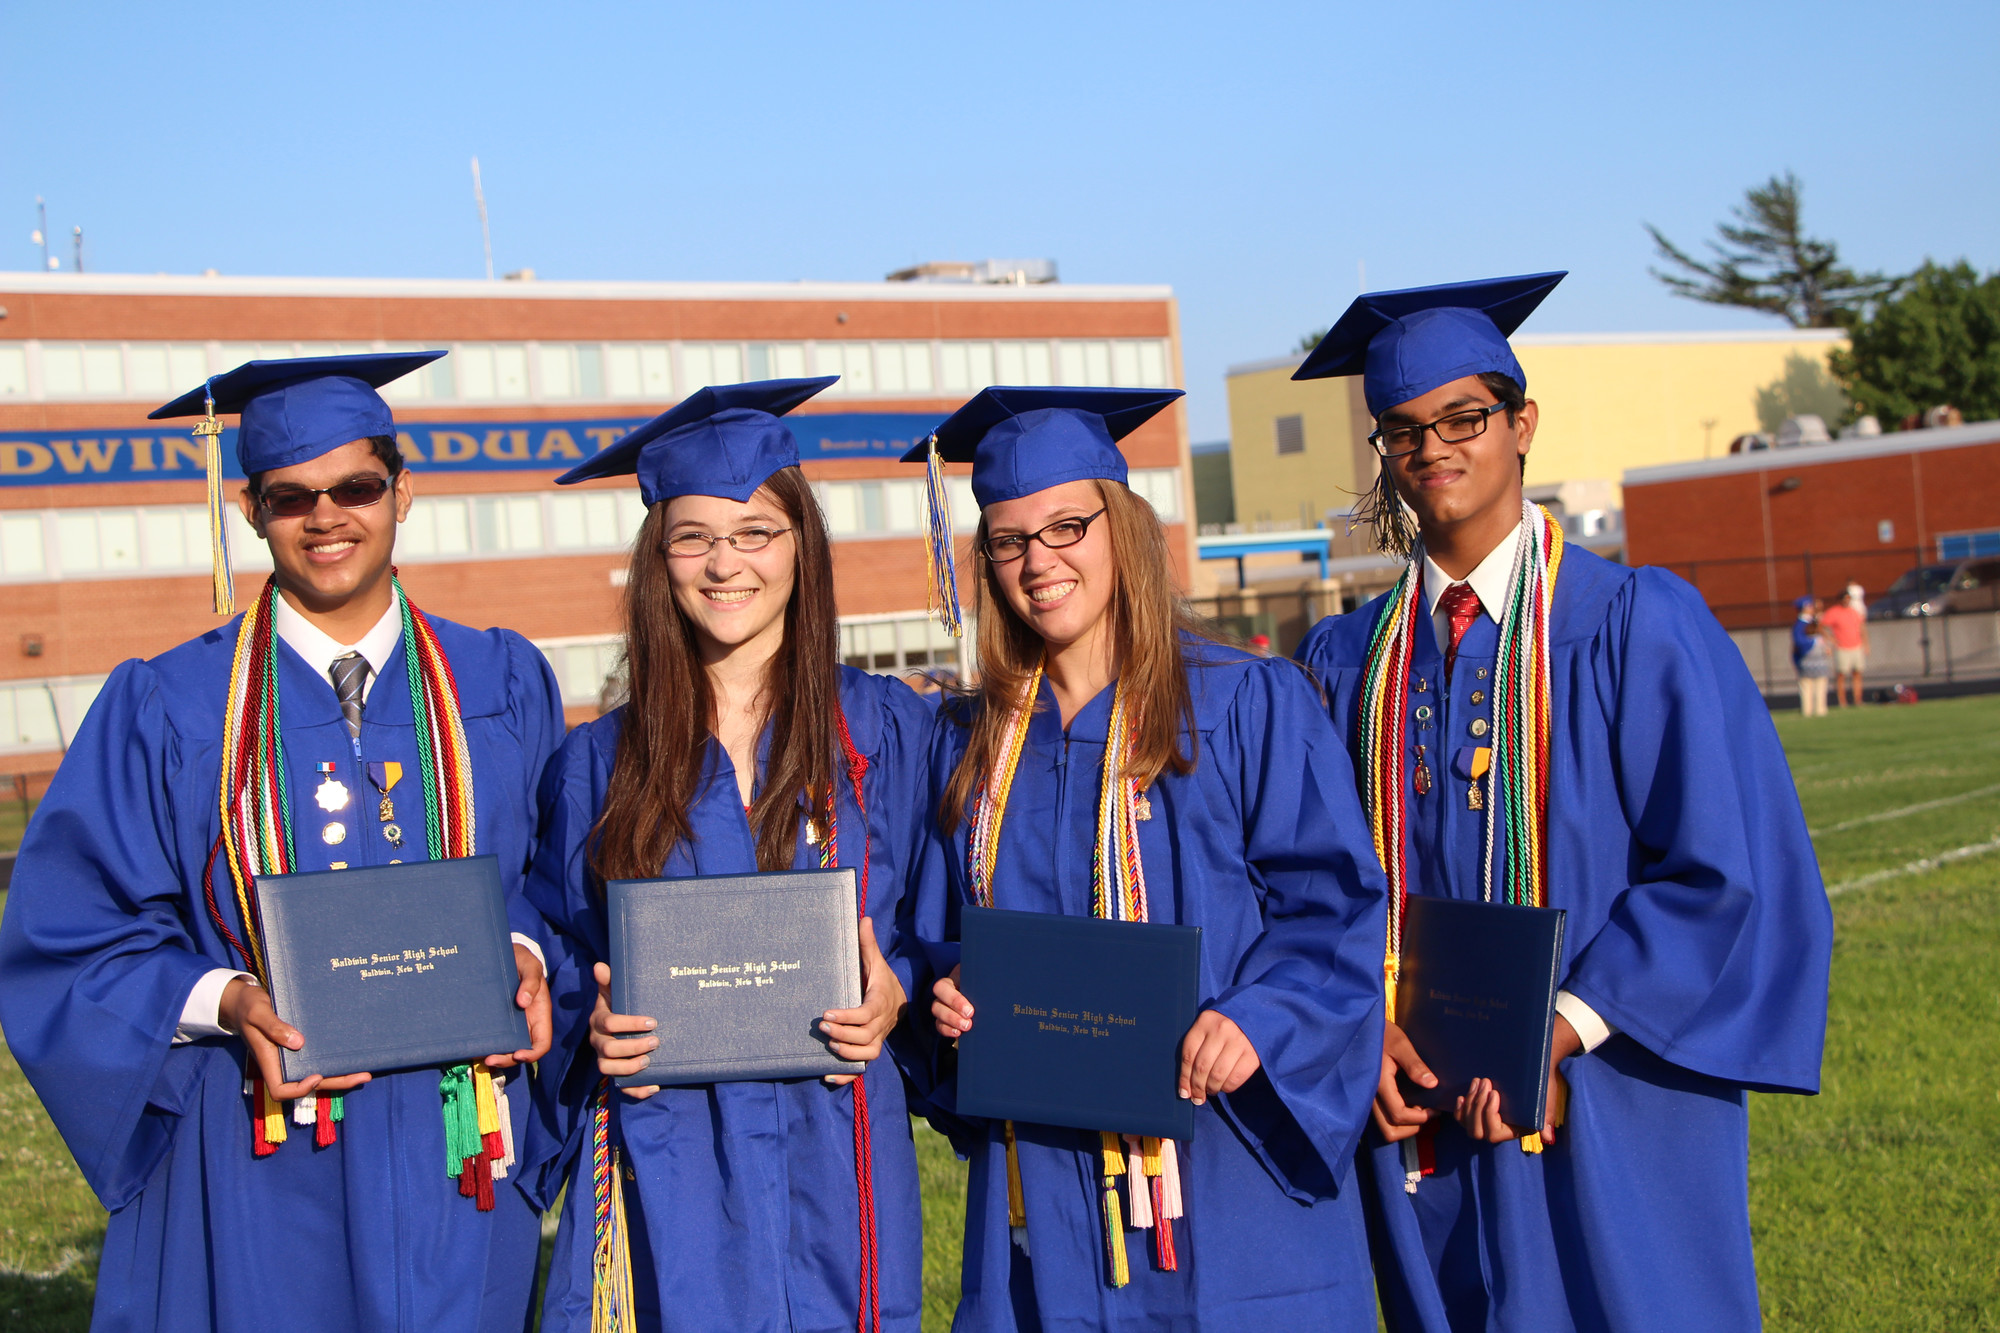 Baldwin High School's class of 2014 graduated on June 27 in front of family and friends. From left were Vineet Vishwanath, Virigia Lee, Kirsten Watts and Vikram Vishwanath.